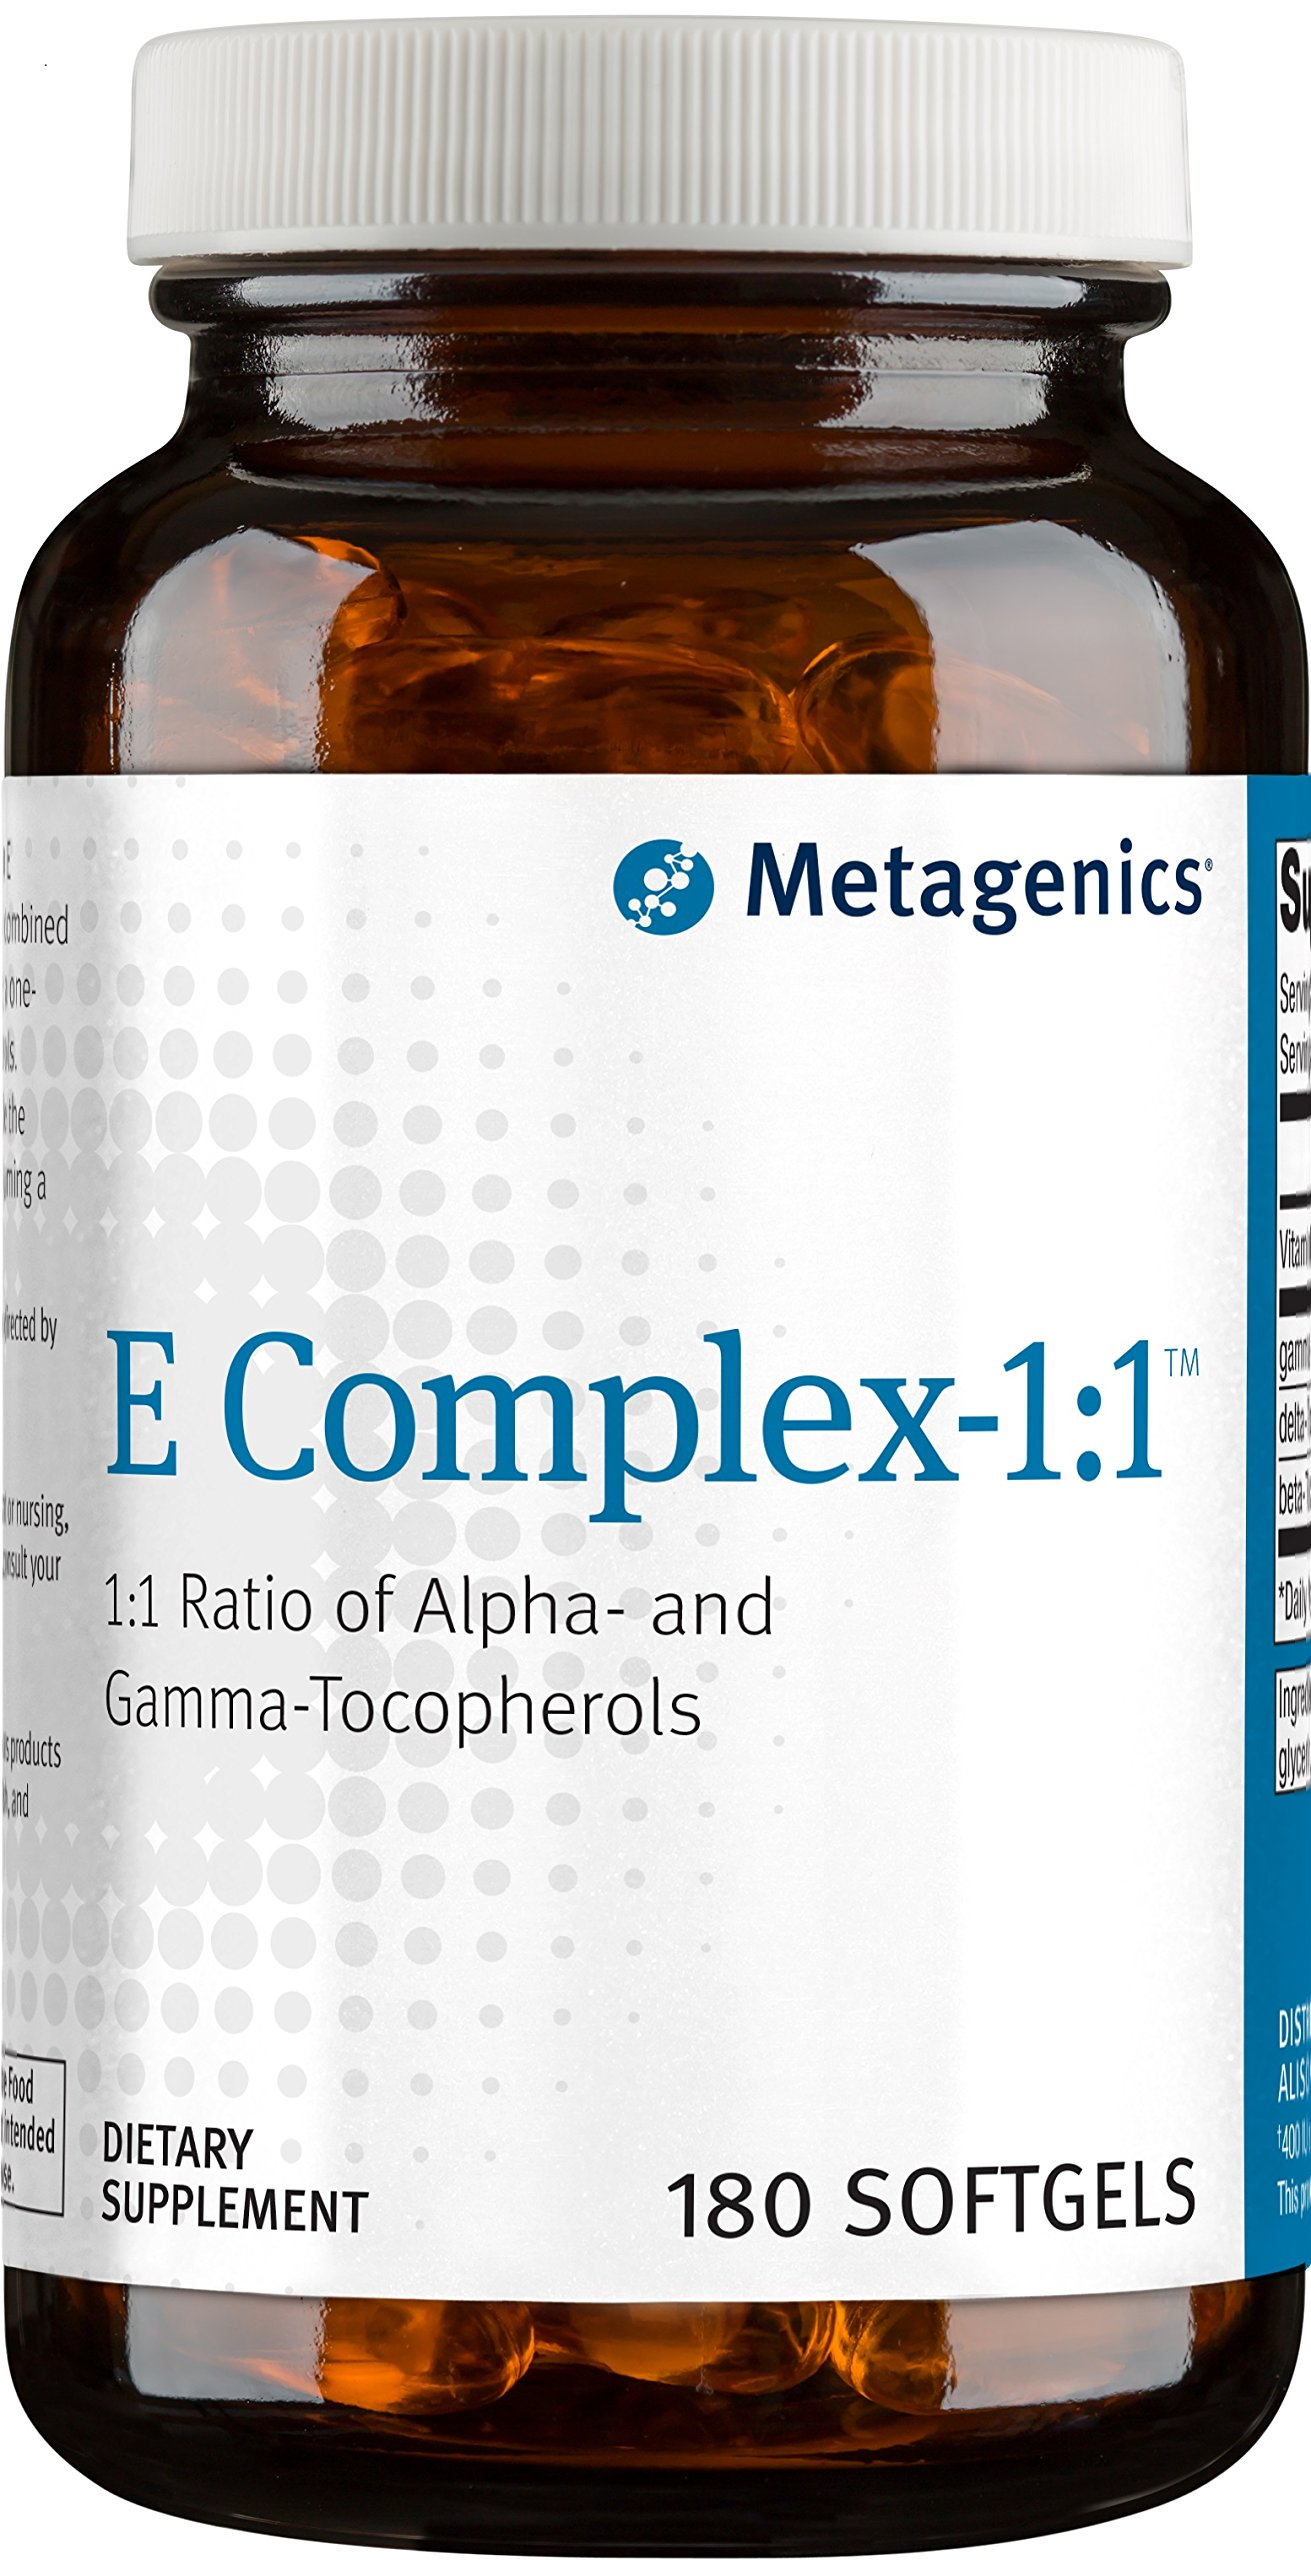 Metagenics - E Complex-1:1, 180 Count by Metagenics